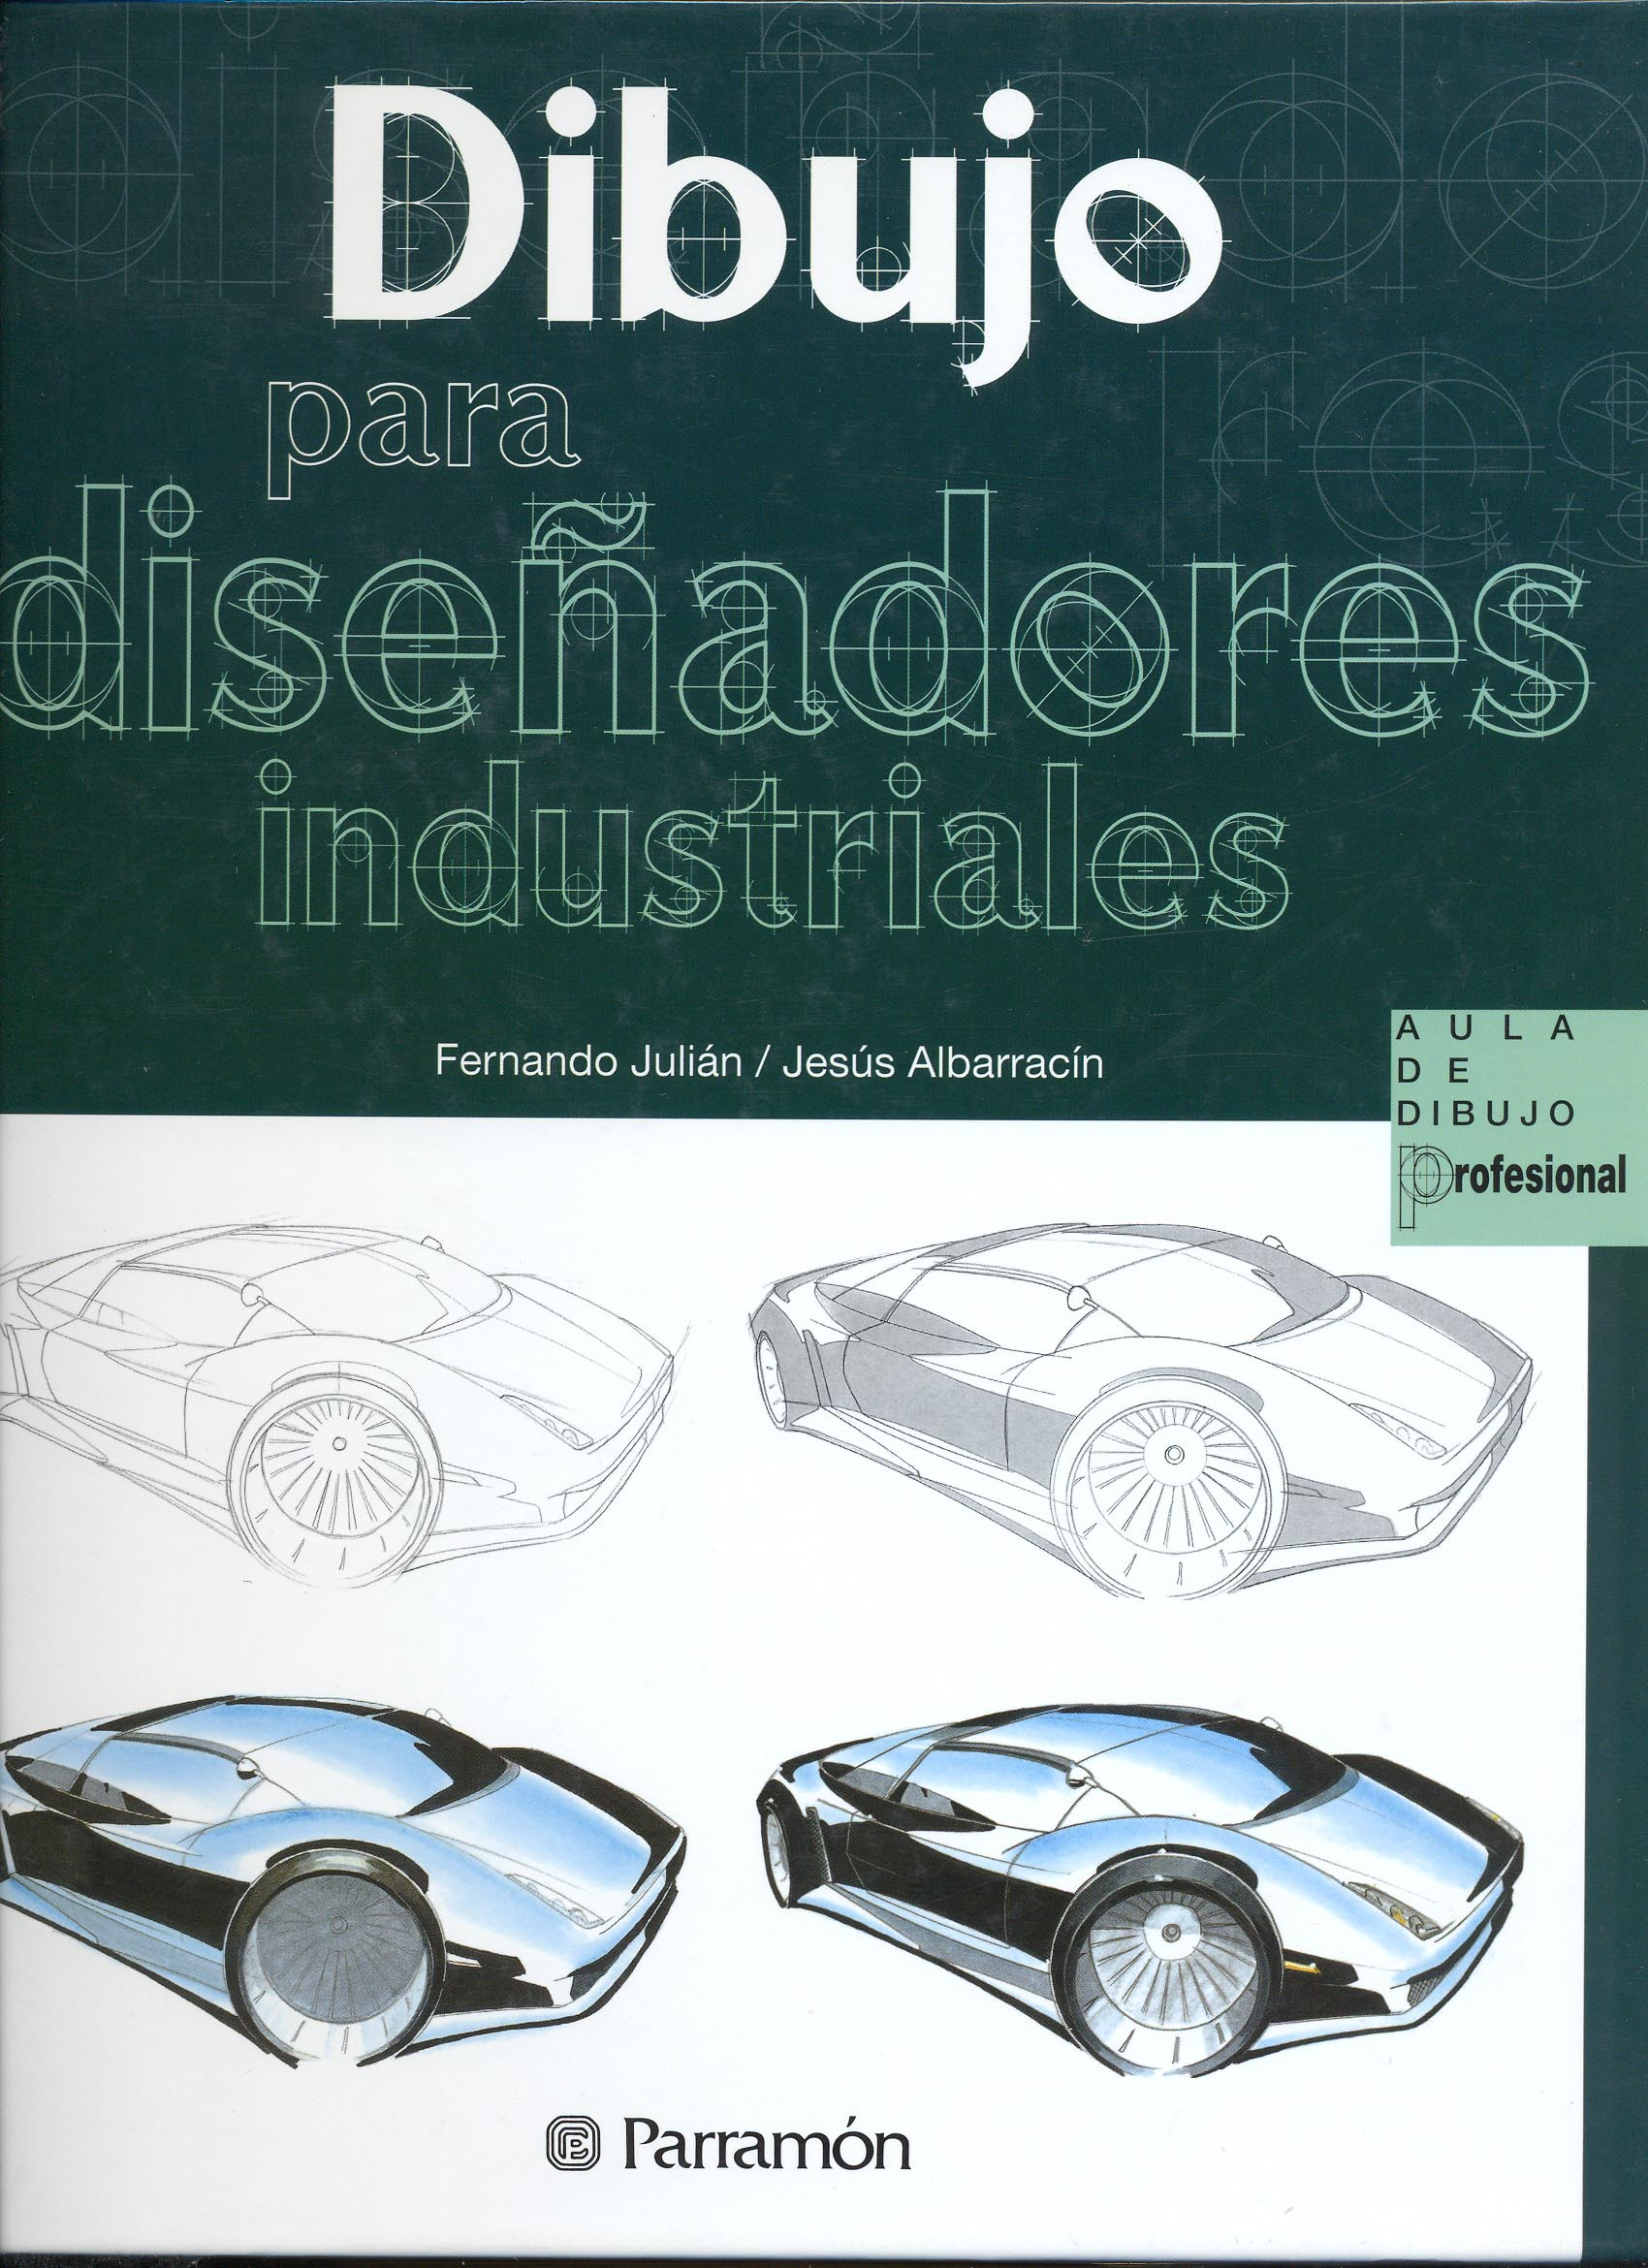 Download Dibujo Para Diseñadores Industriales - Fernando Julián y Jesús  Albarracín - Documents